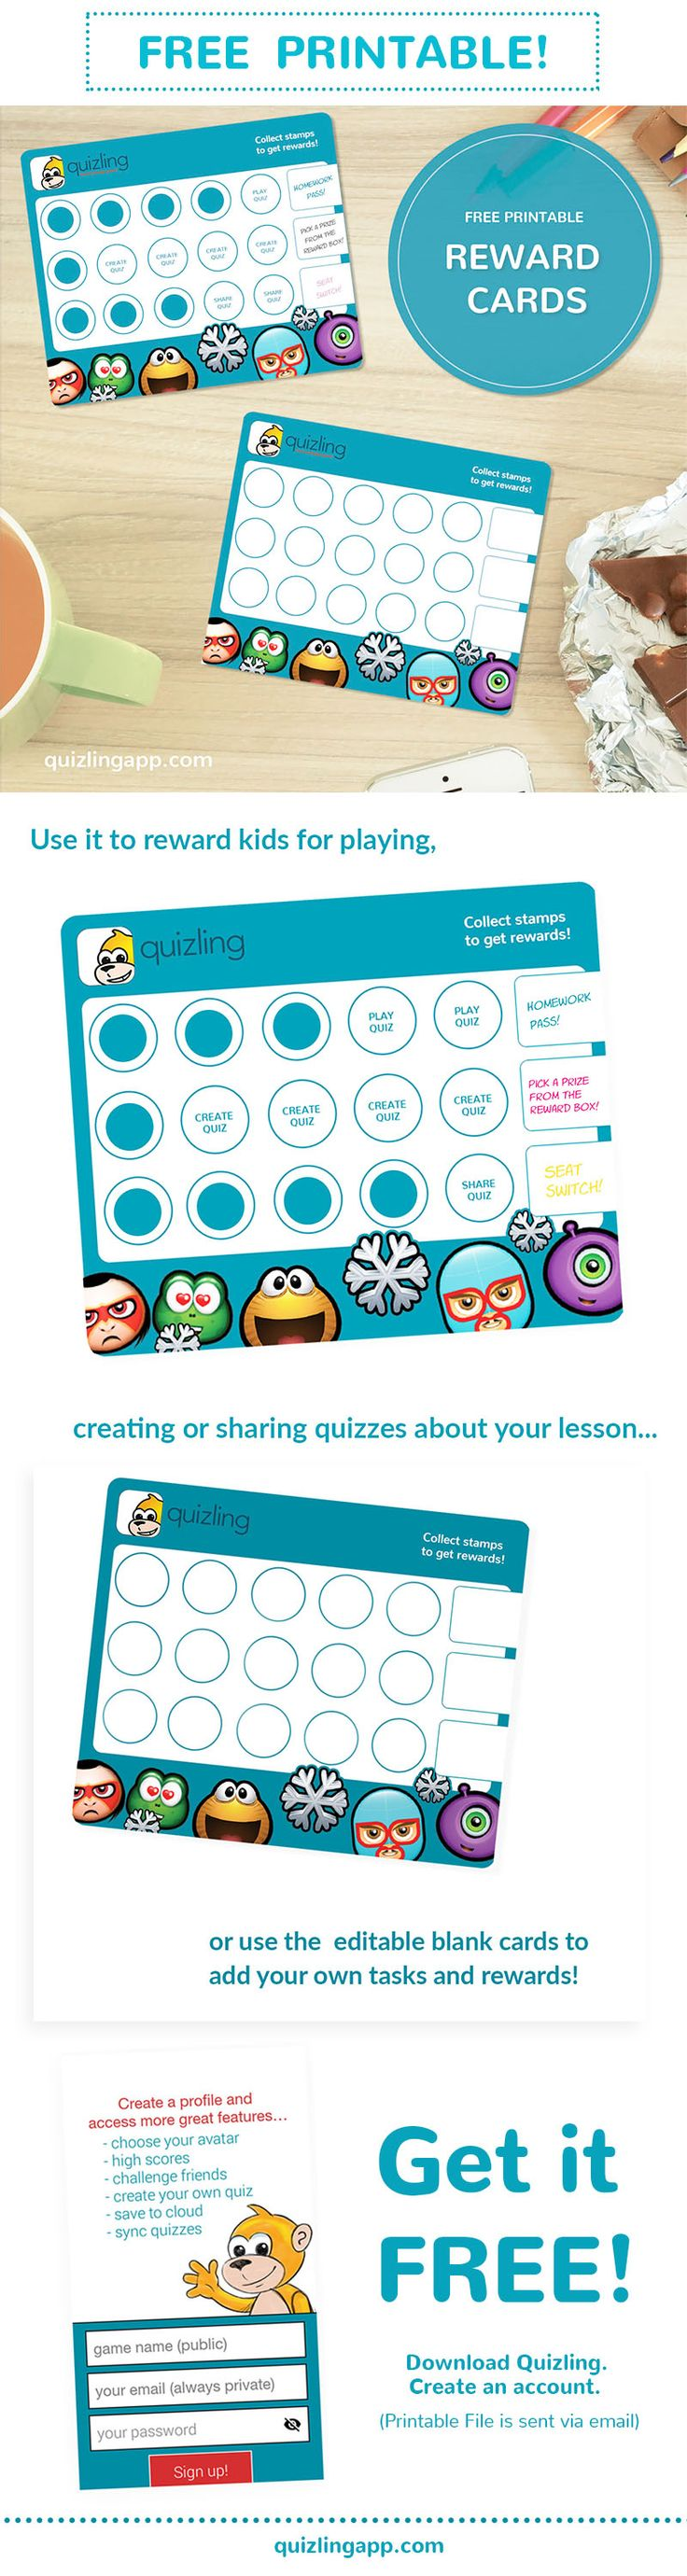 FREE! Kids learn most when they're motivated.  Get these printable and editable Reward Cards for free on your email when you sign up for a Quizling account!  Great for saving time, money and resources on classroom rewards.